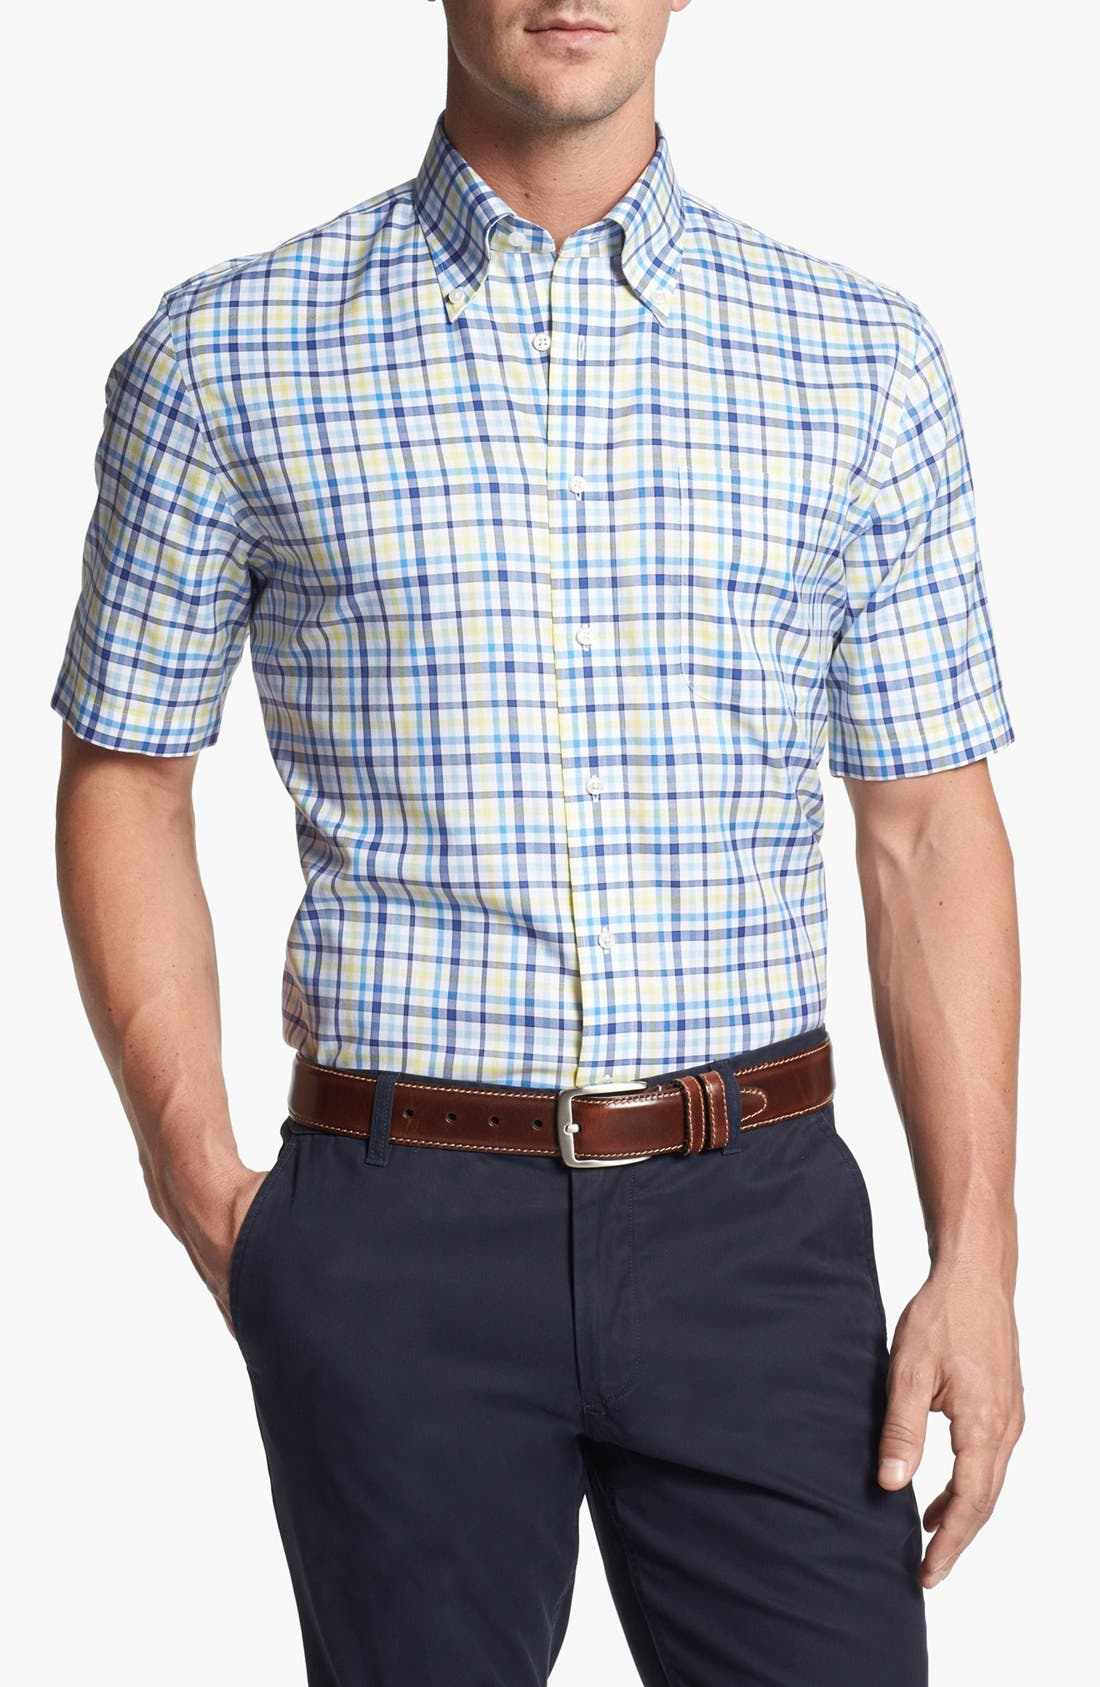 Main Image - Nordstrom Smartcare™ Traditional Fit Short Sleeve Dress Shirt